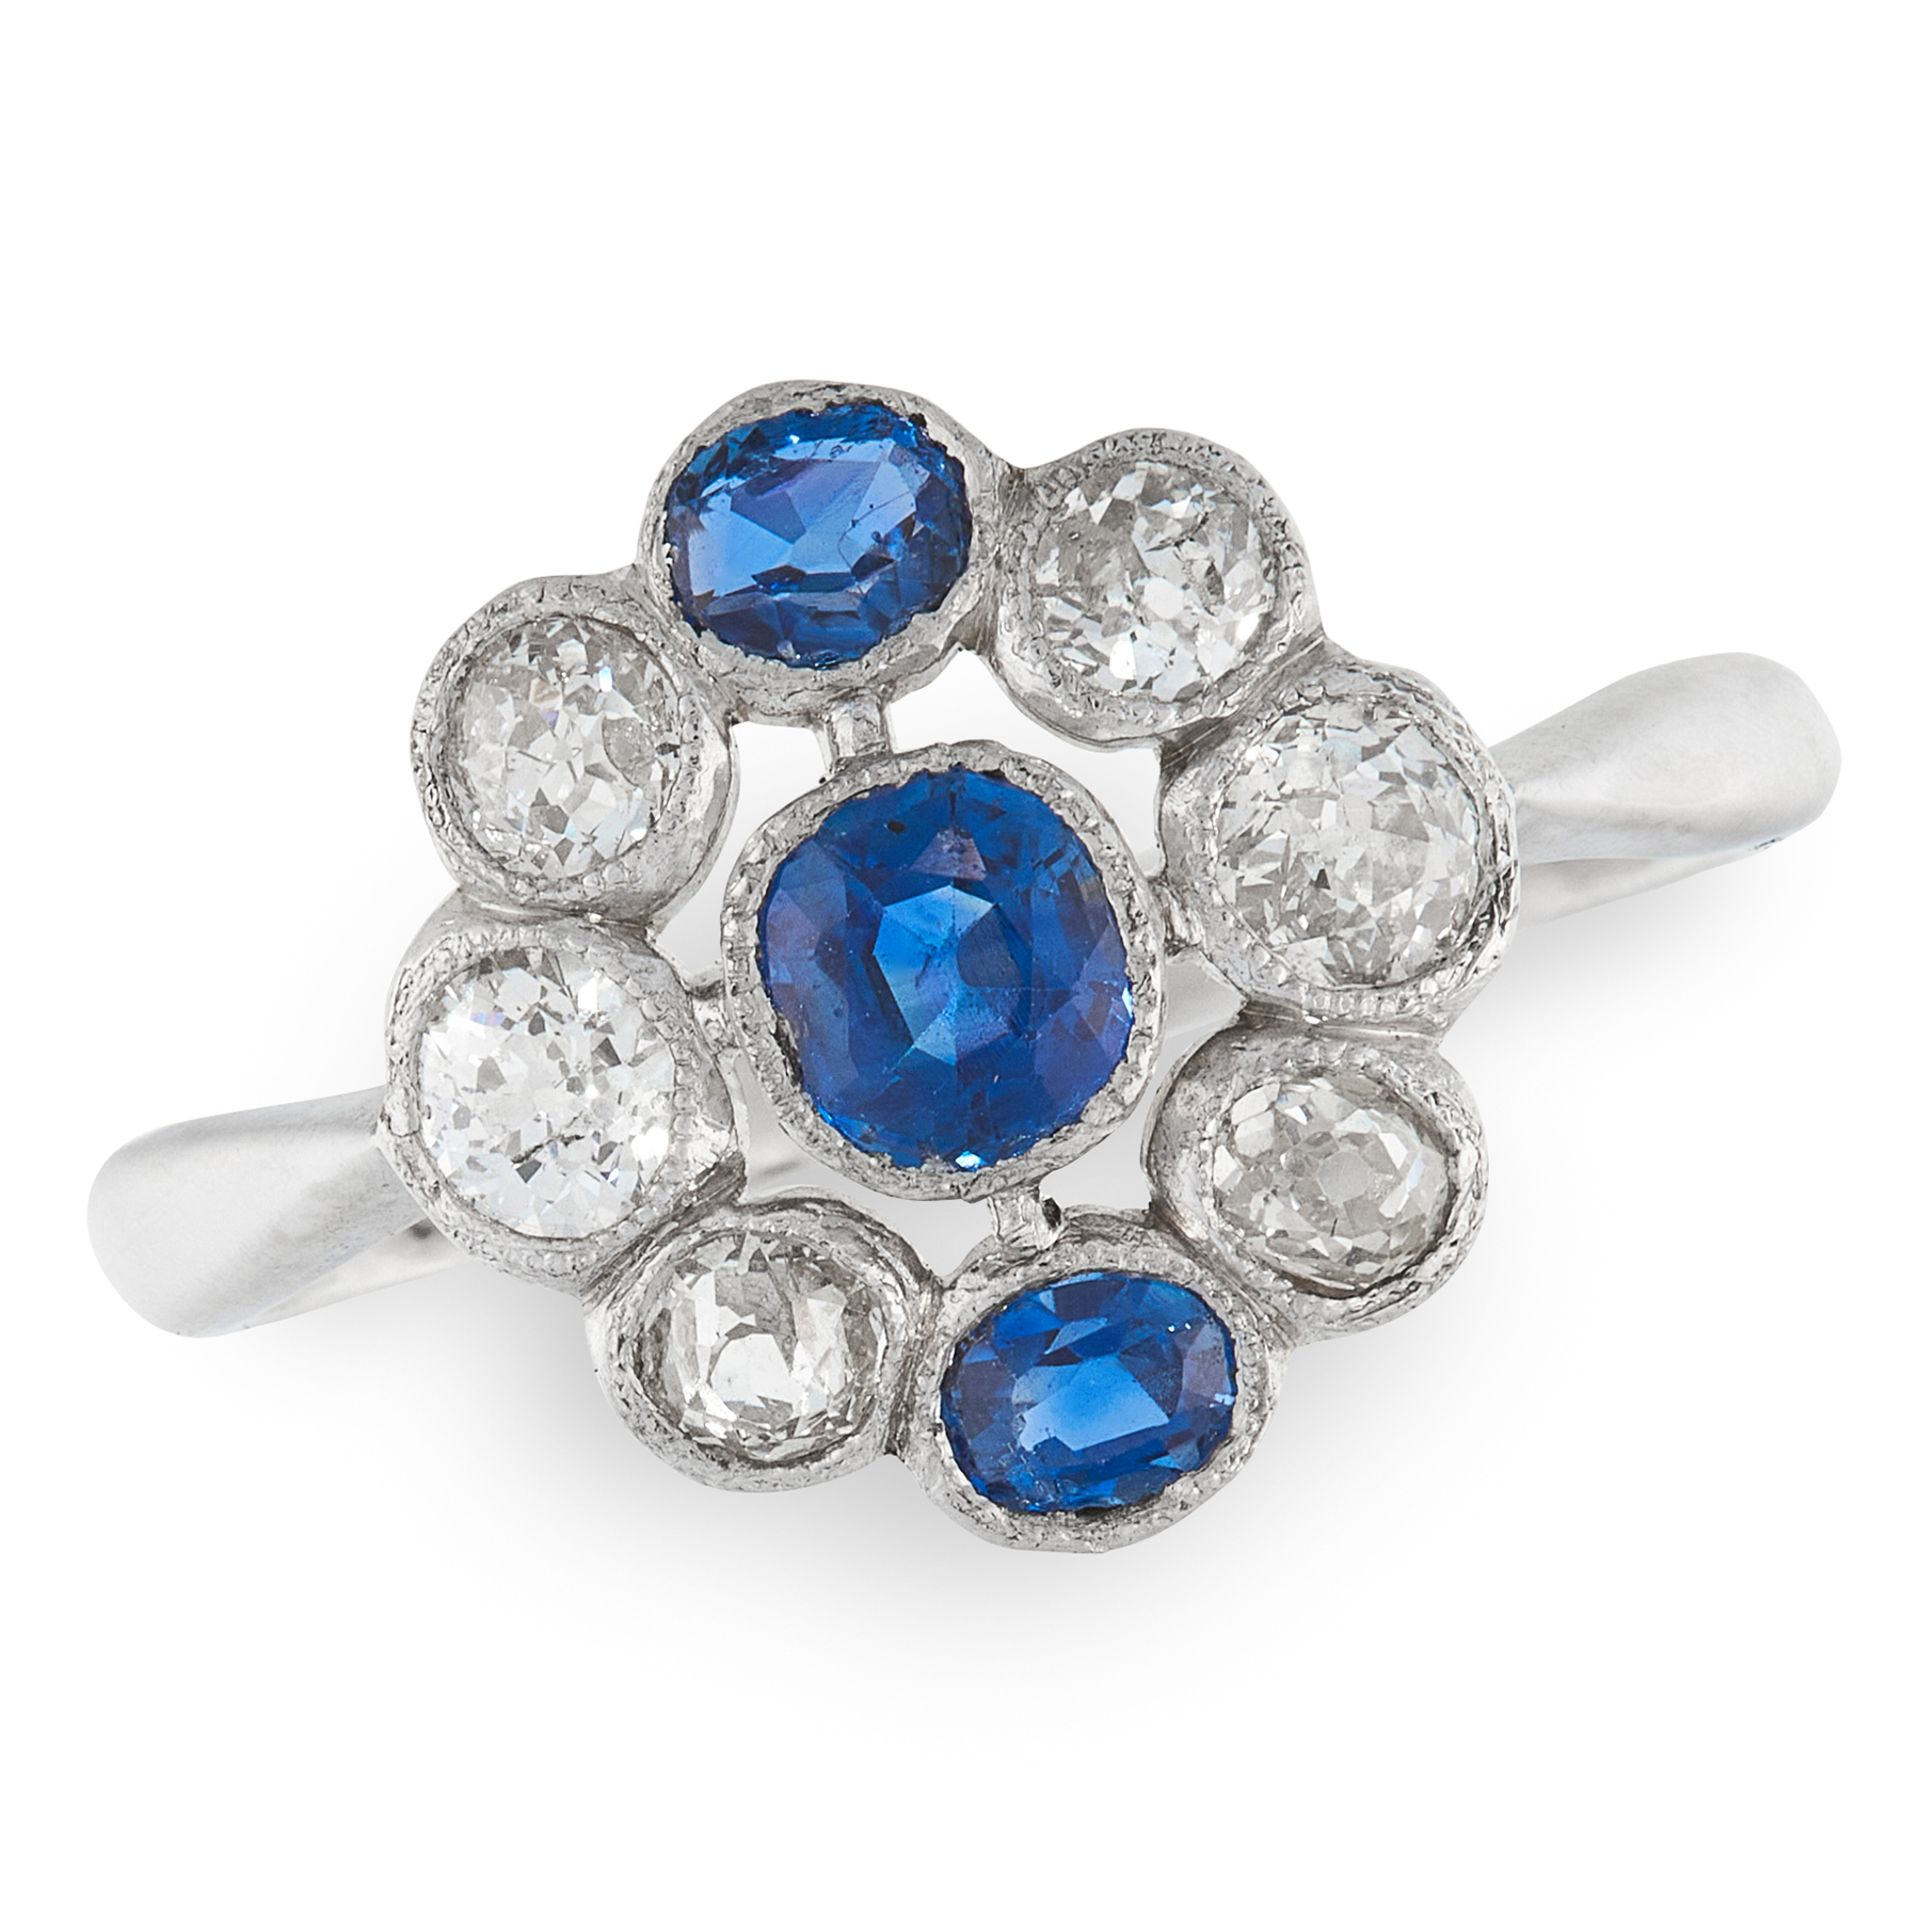 A SAPPHIRE AND DIAMOND DRESS RING in 18ct white gold, set with a trio of graduated cushion cut